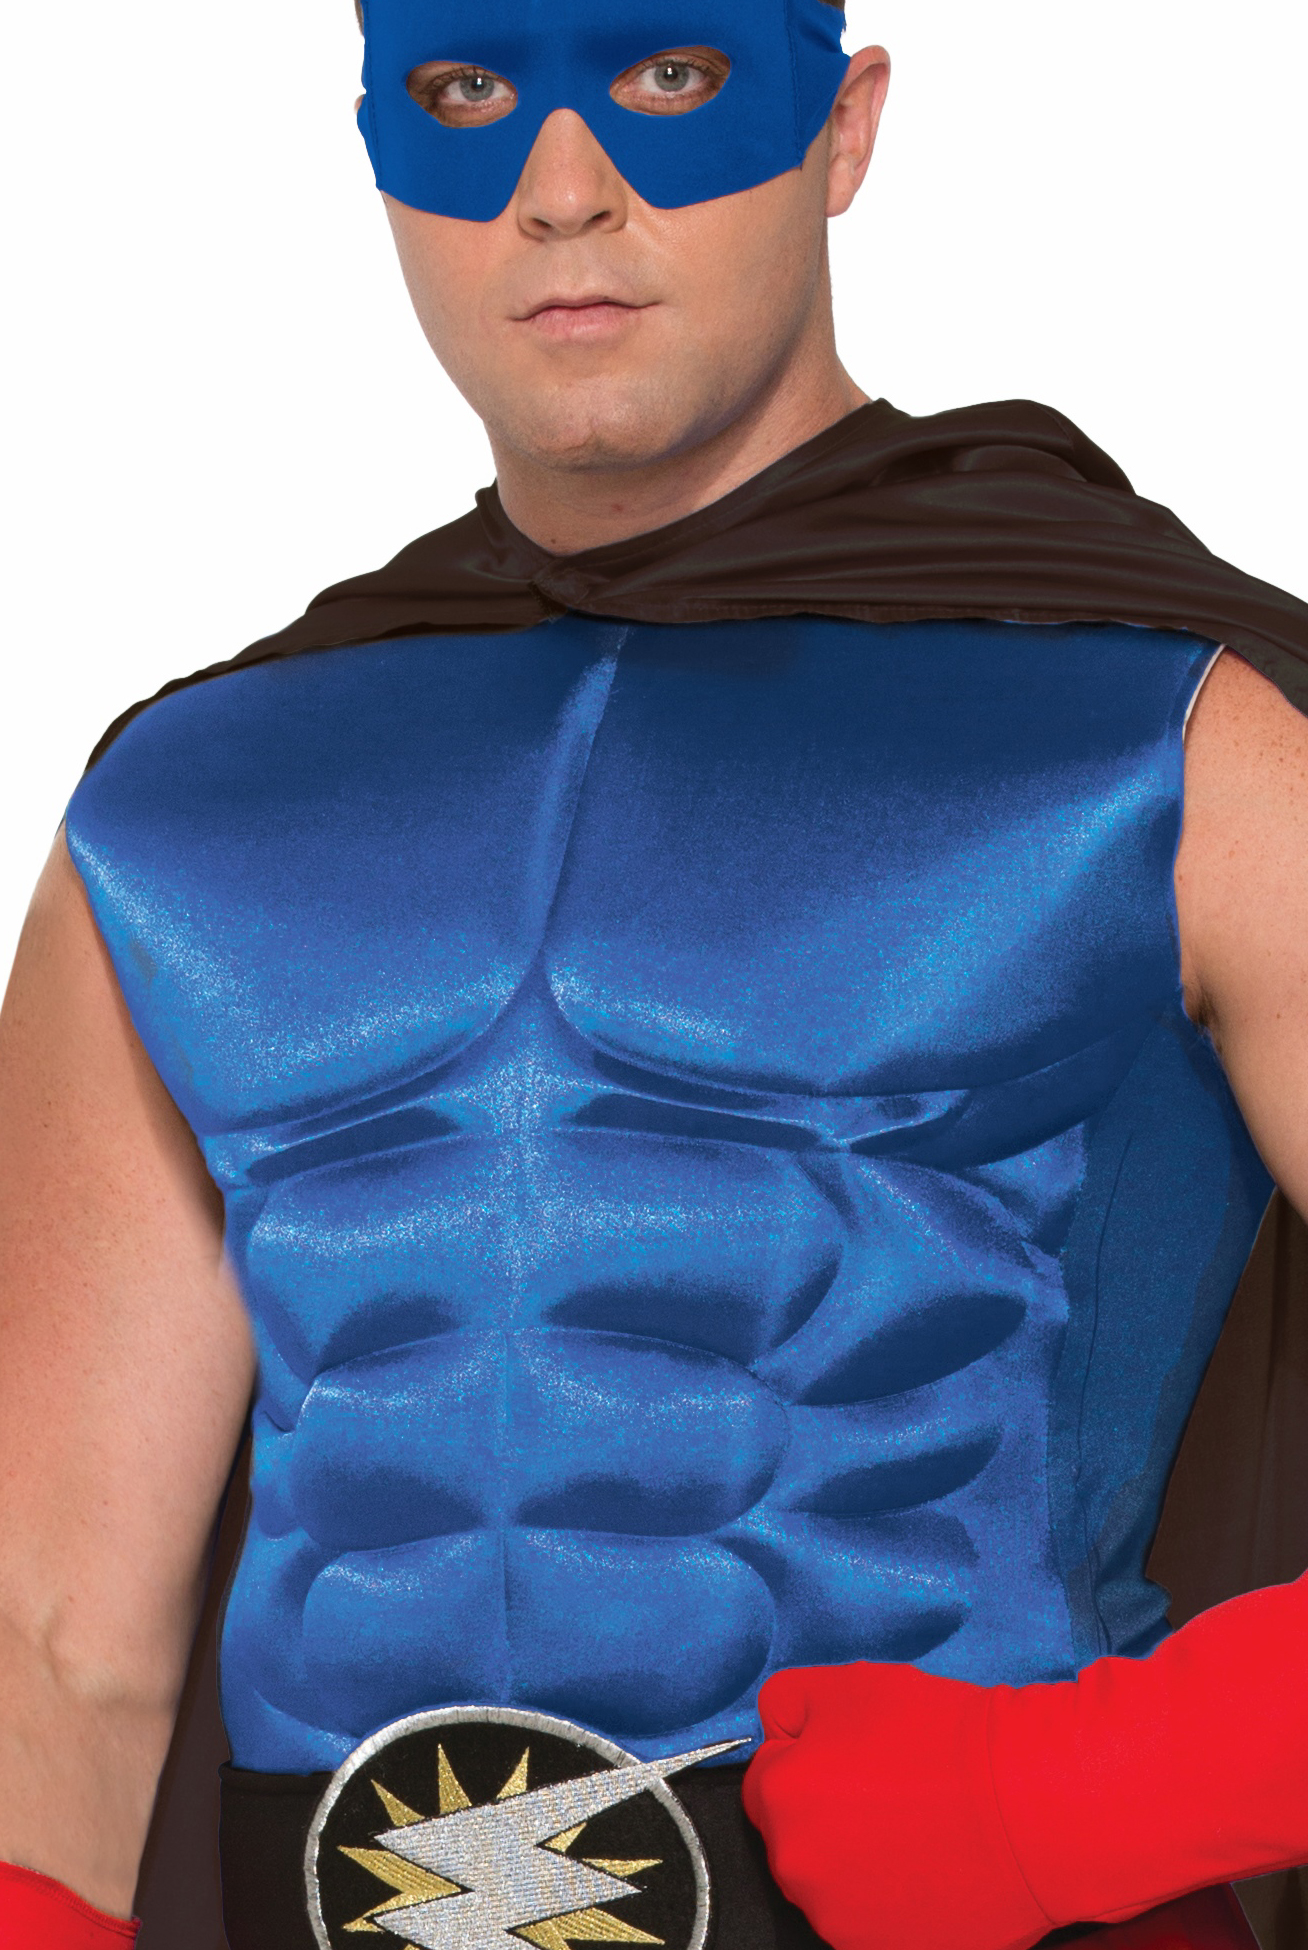 Adultu0027s Blue Superhero Or Villain Muscle Chest Padded Shirt Costume Accessory - Walmart.com  sc 1 st  Walmart & Adultu0027s Blue Superhero Or Villain Muscle Chest Padded Shirt Costume ...